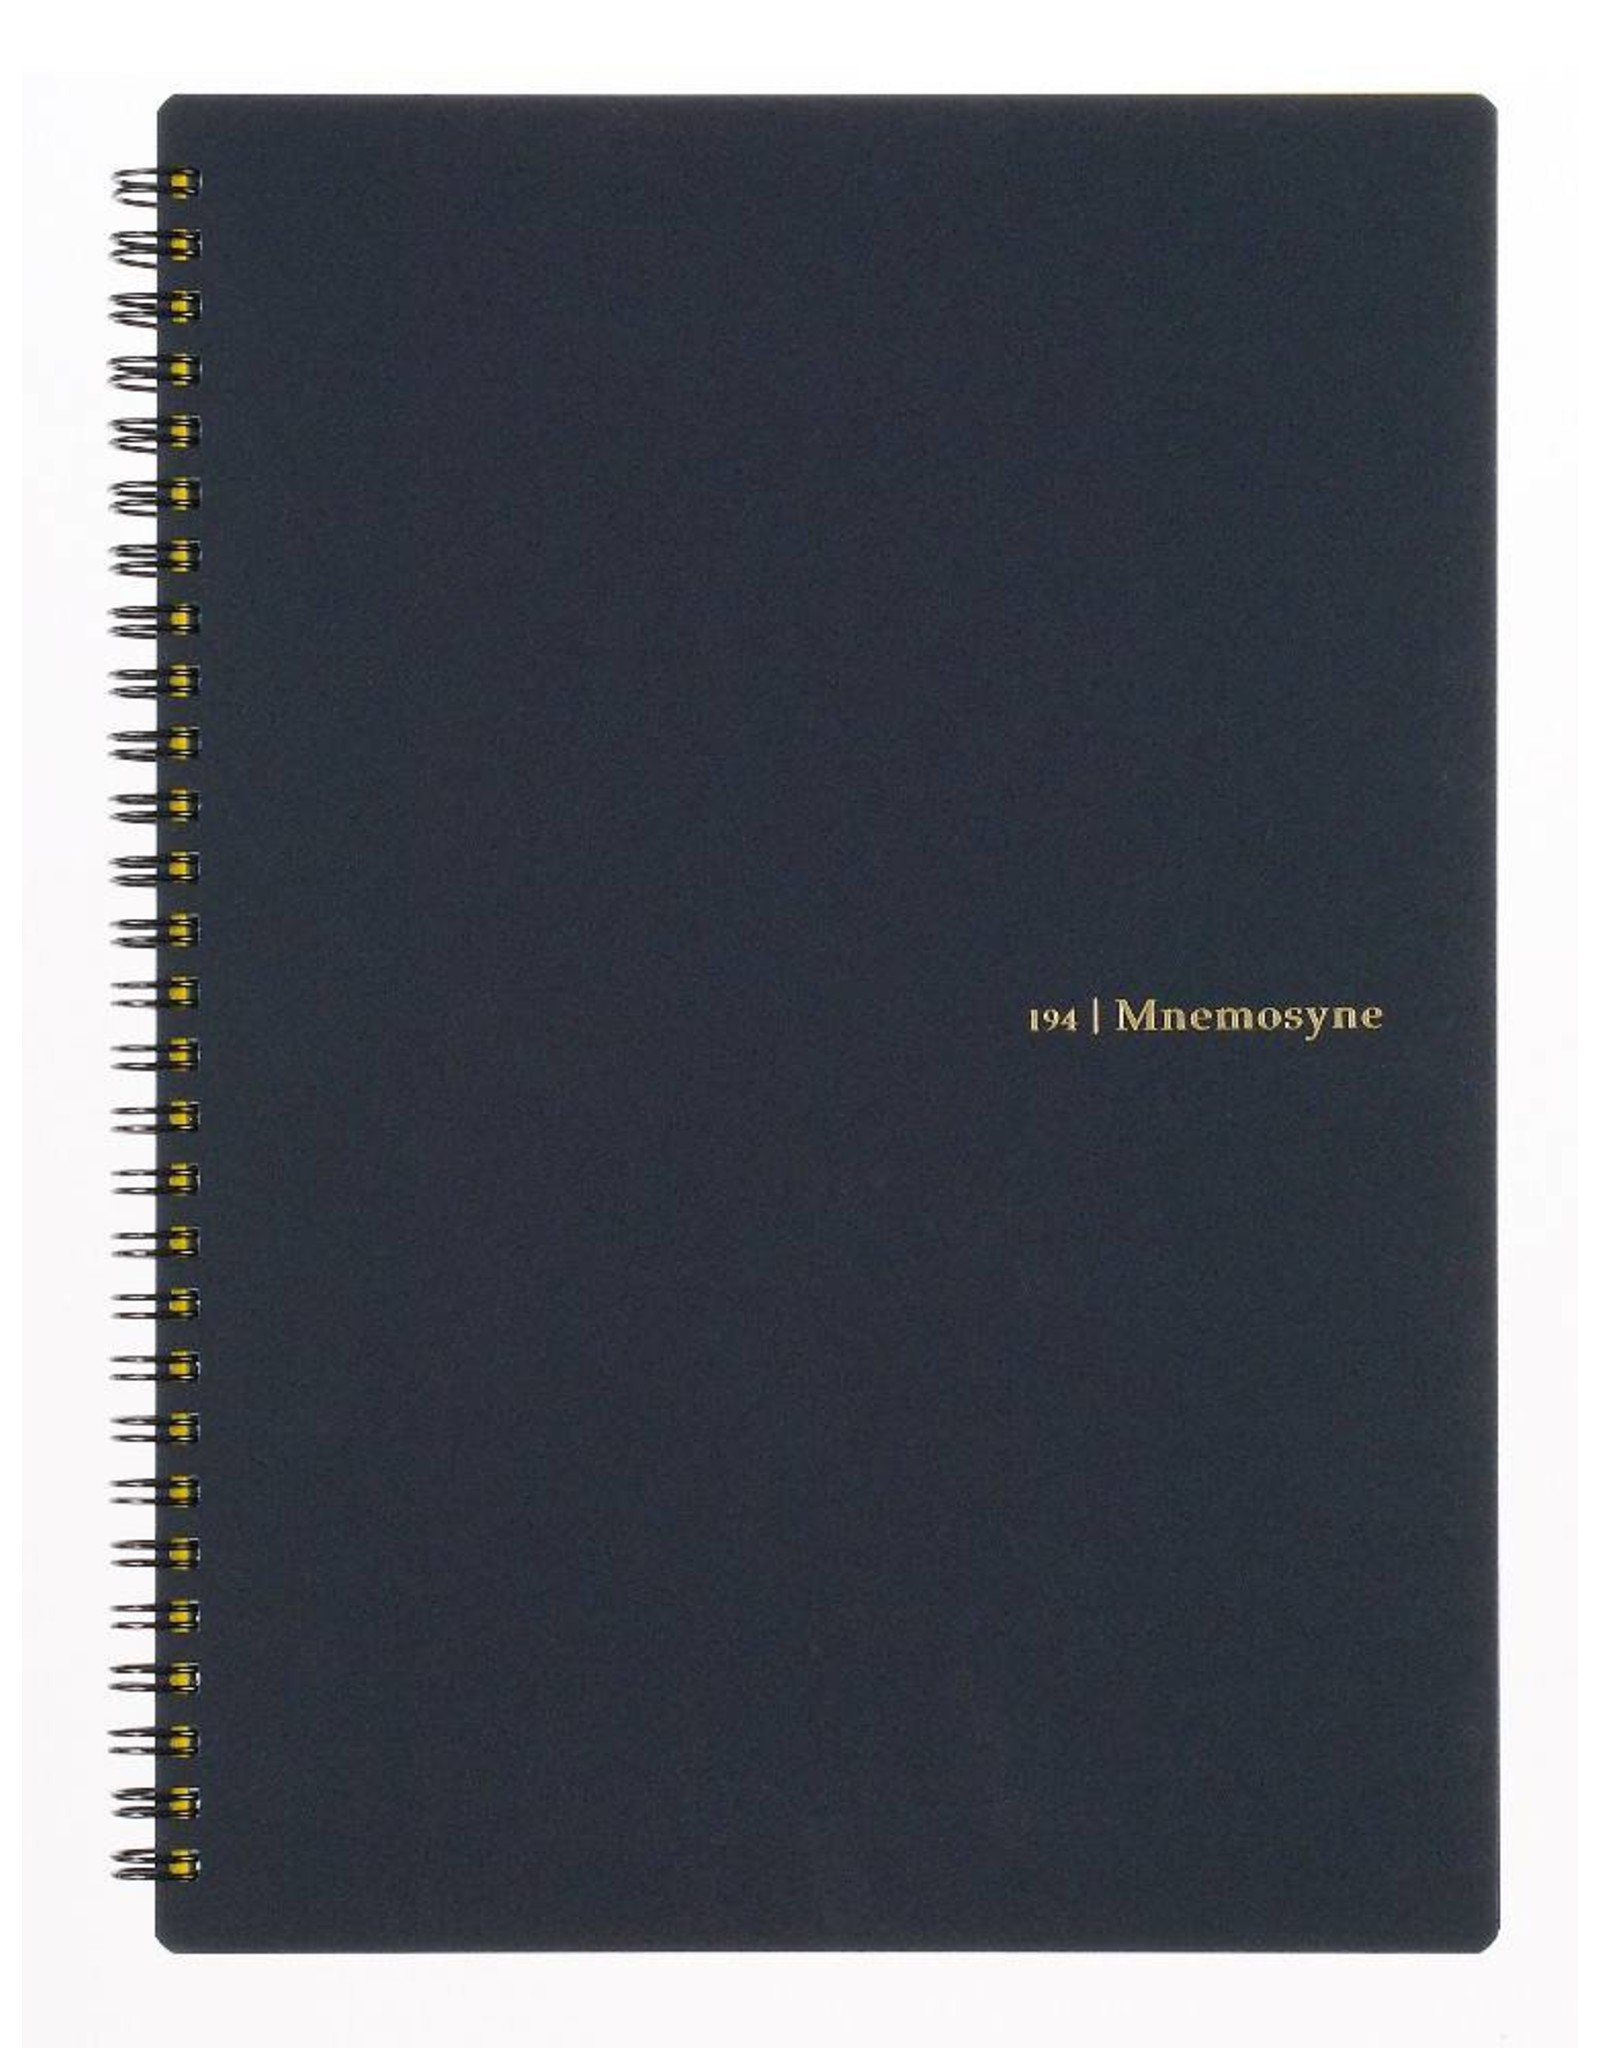 MARUMAN MNEMOSYNE NOTEBOOK 7MM RULED B5